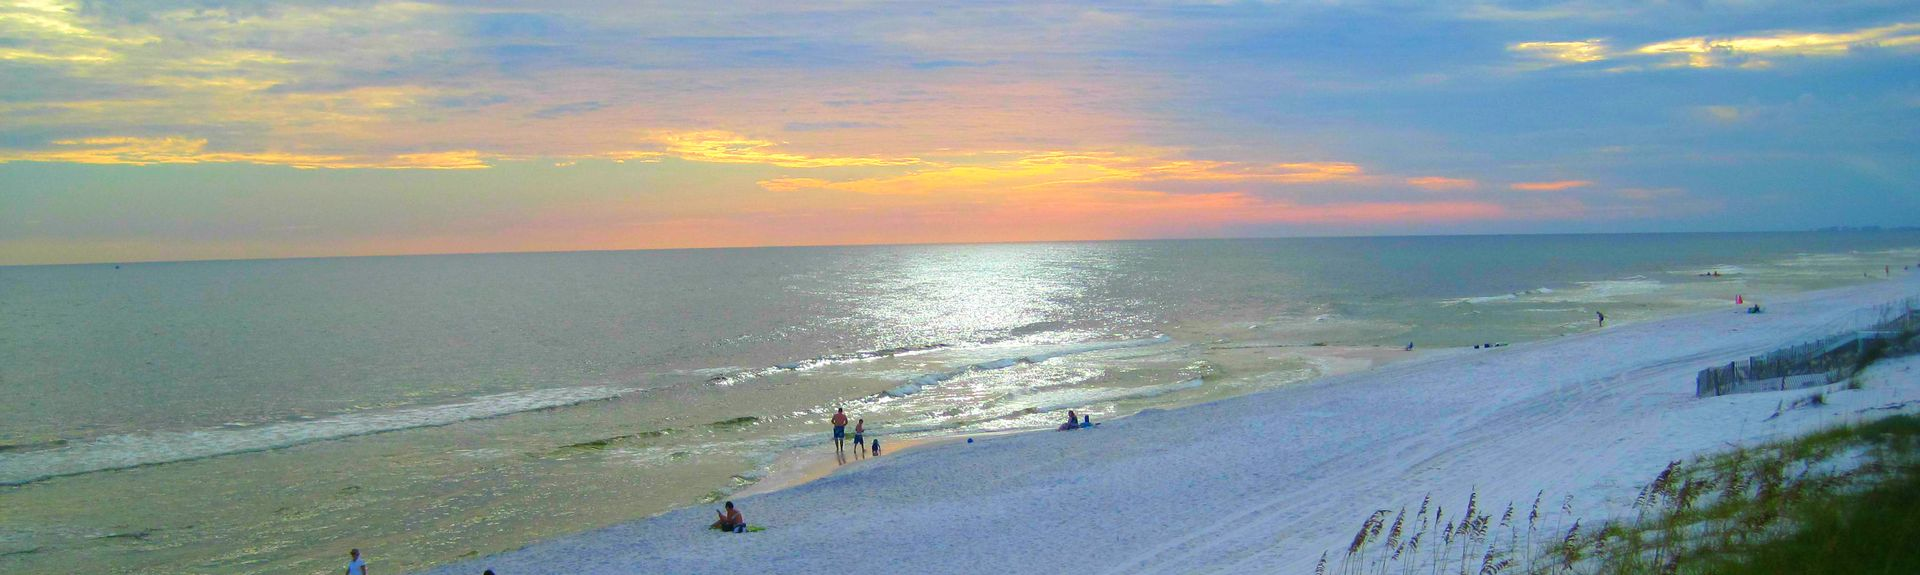 Gulfview Heights, Santa Rosa Beach, FL, USA